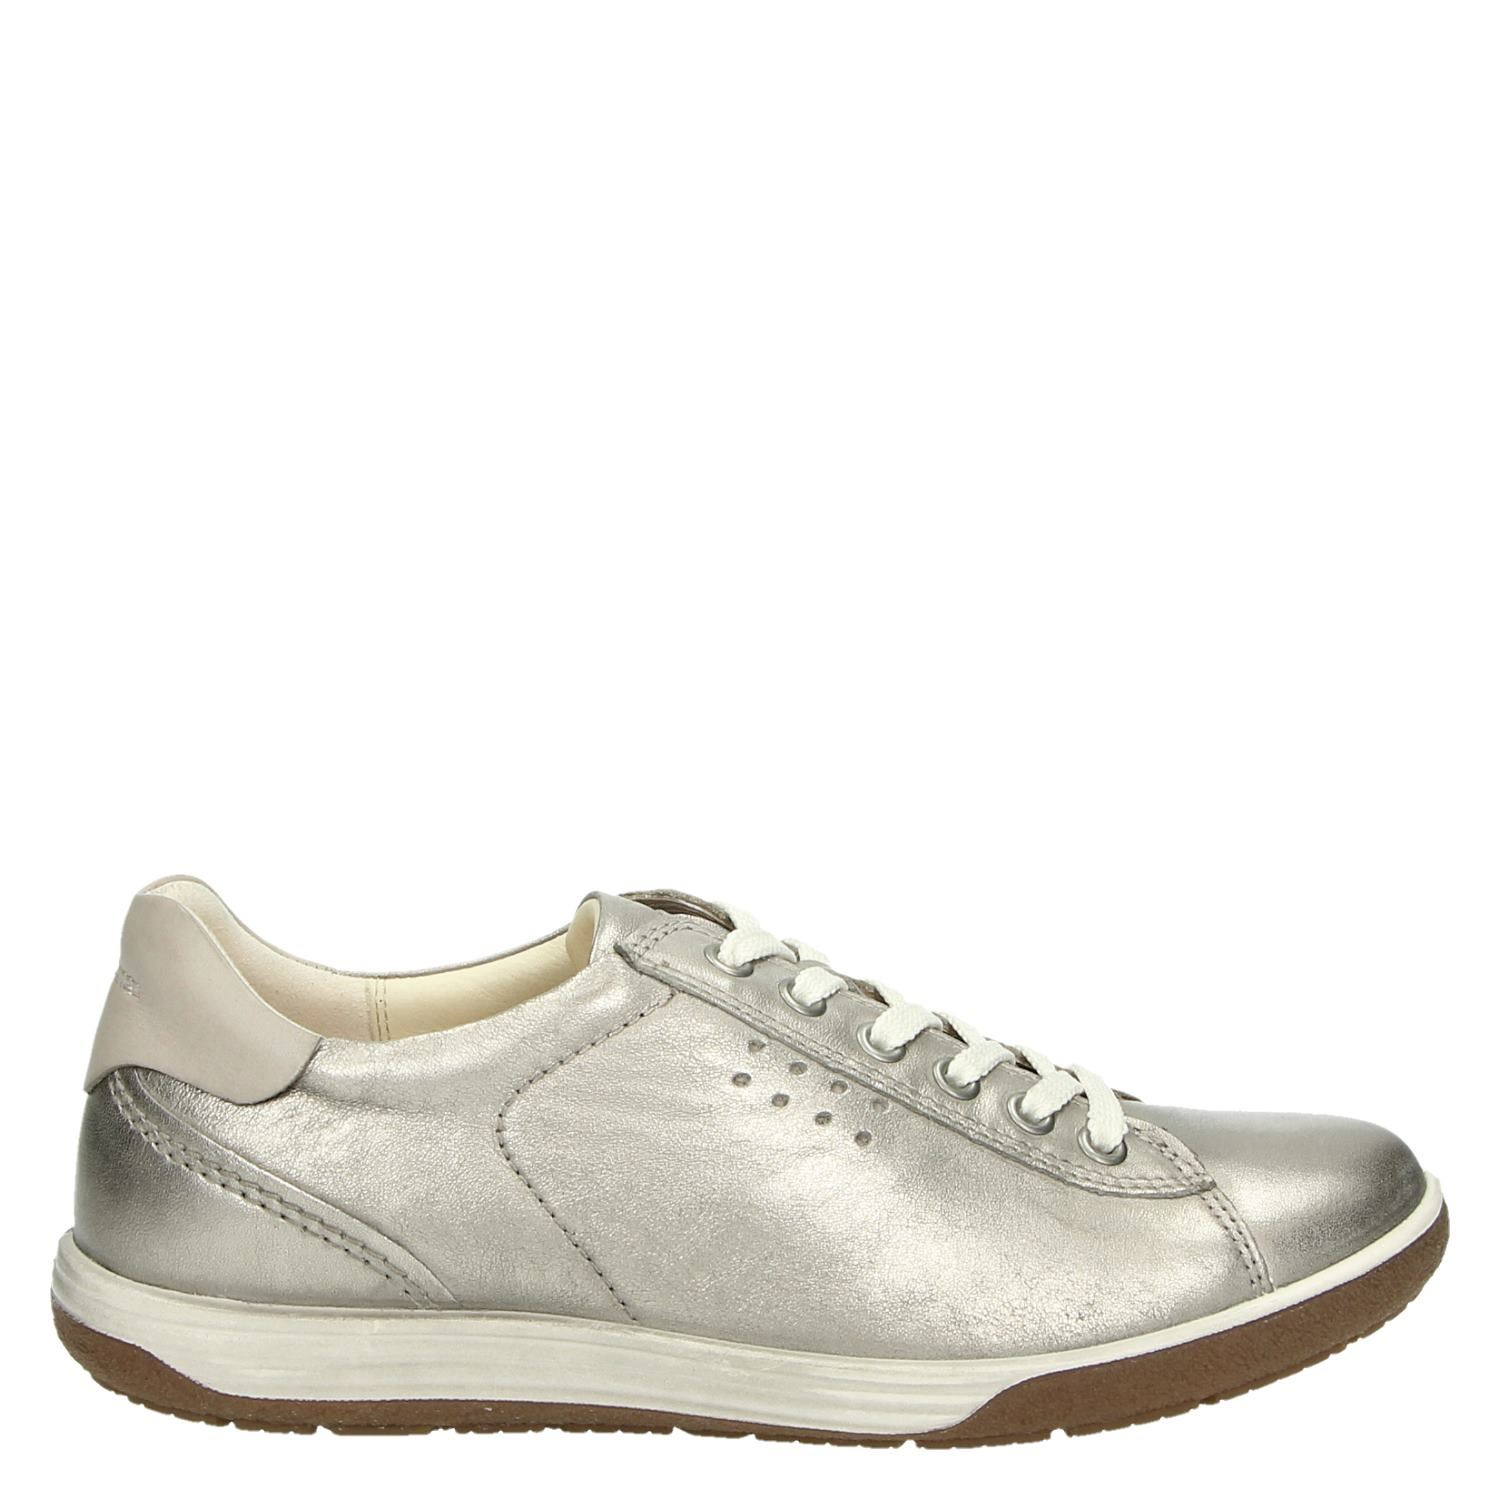 Ecco Chase Ii Chaussures Lacées Or 7l1A9m9n